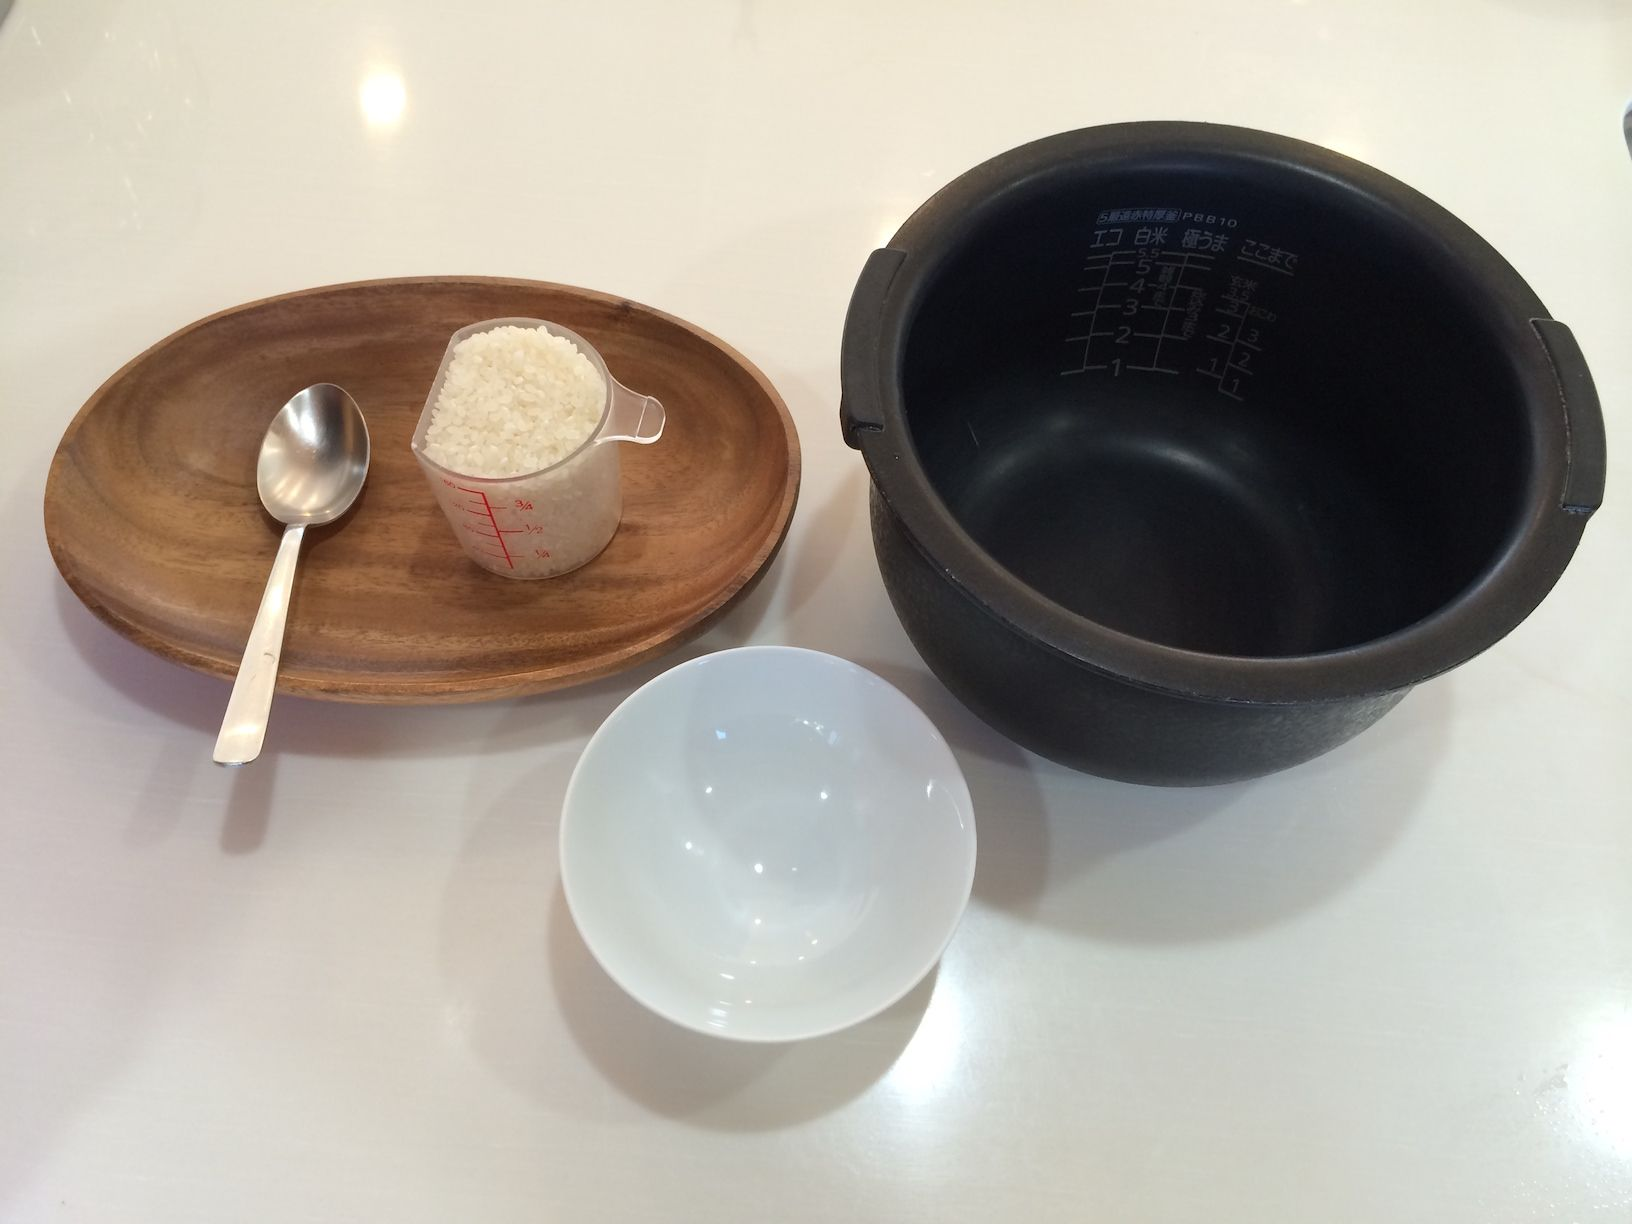 okayu in rice cooker plus cooking okayu for baby at the same time